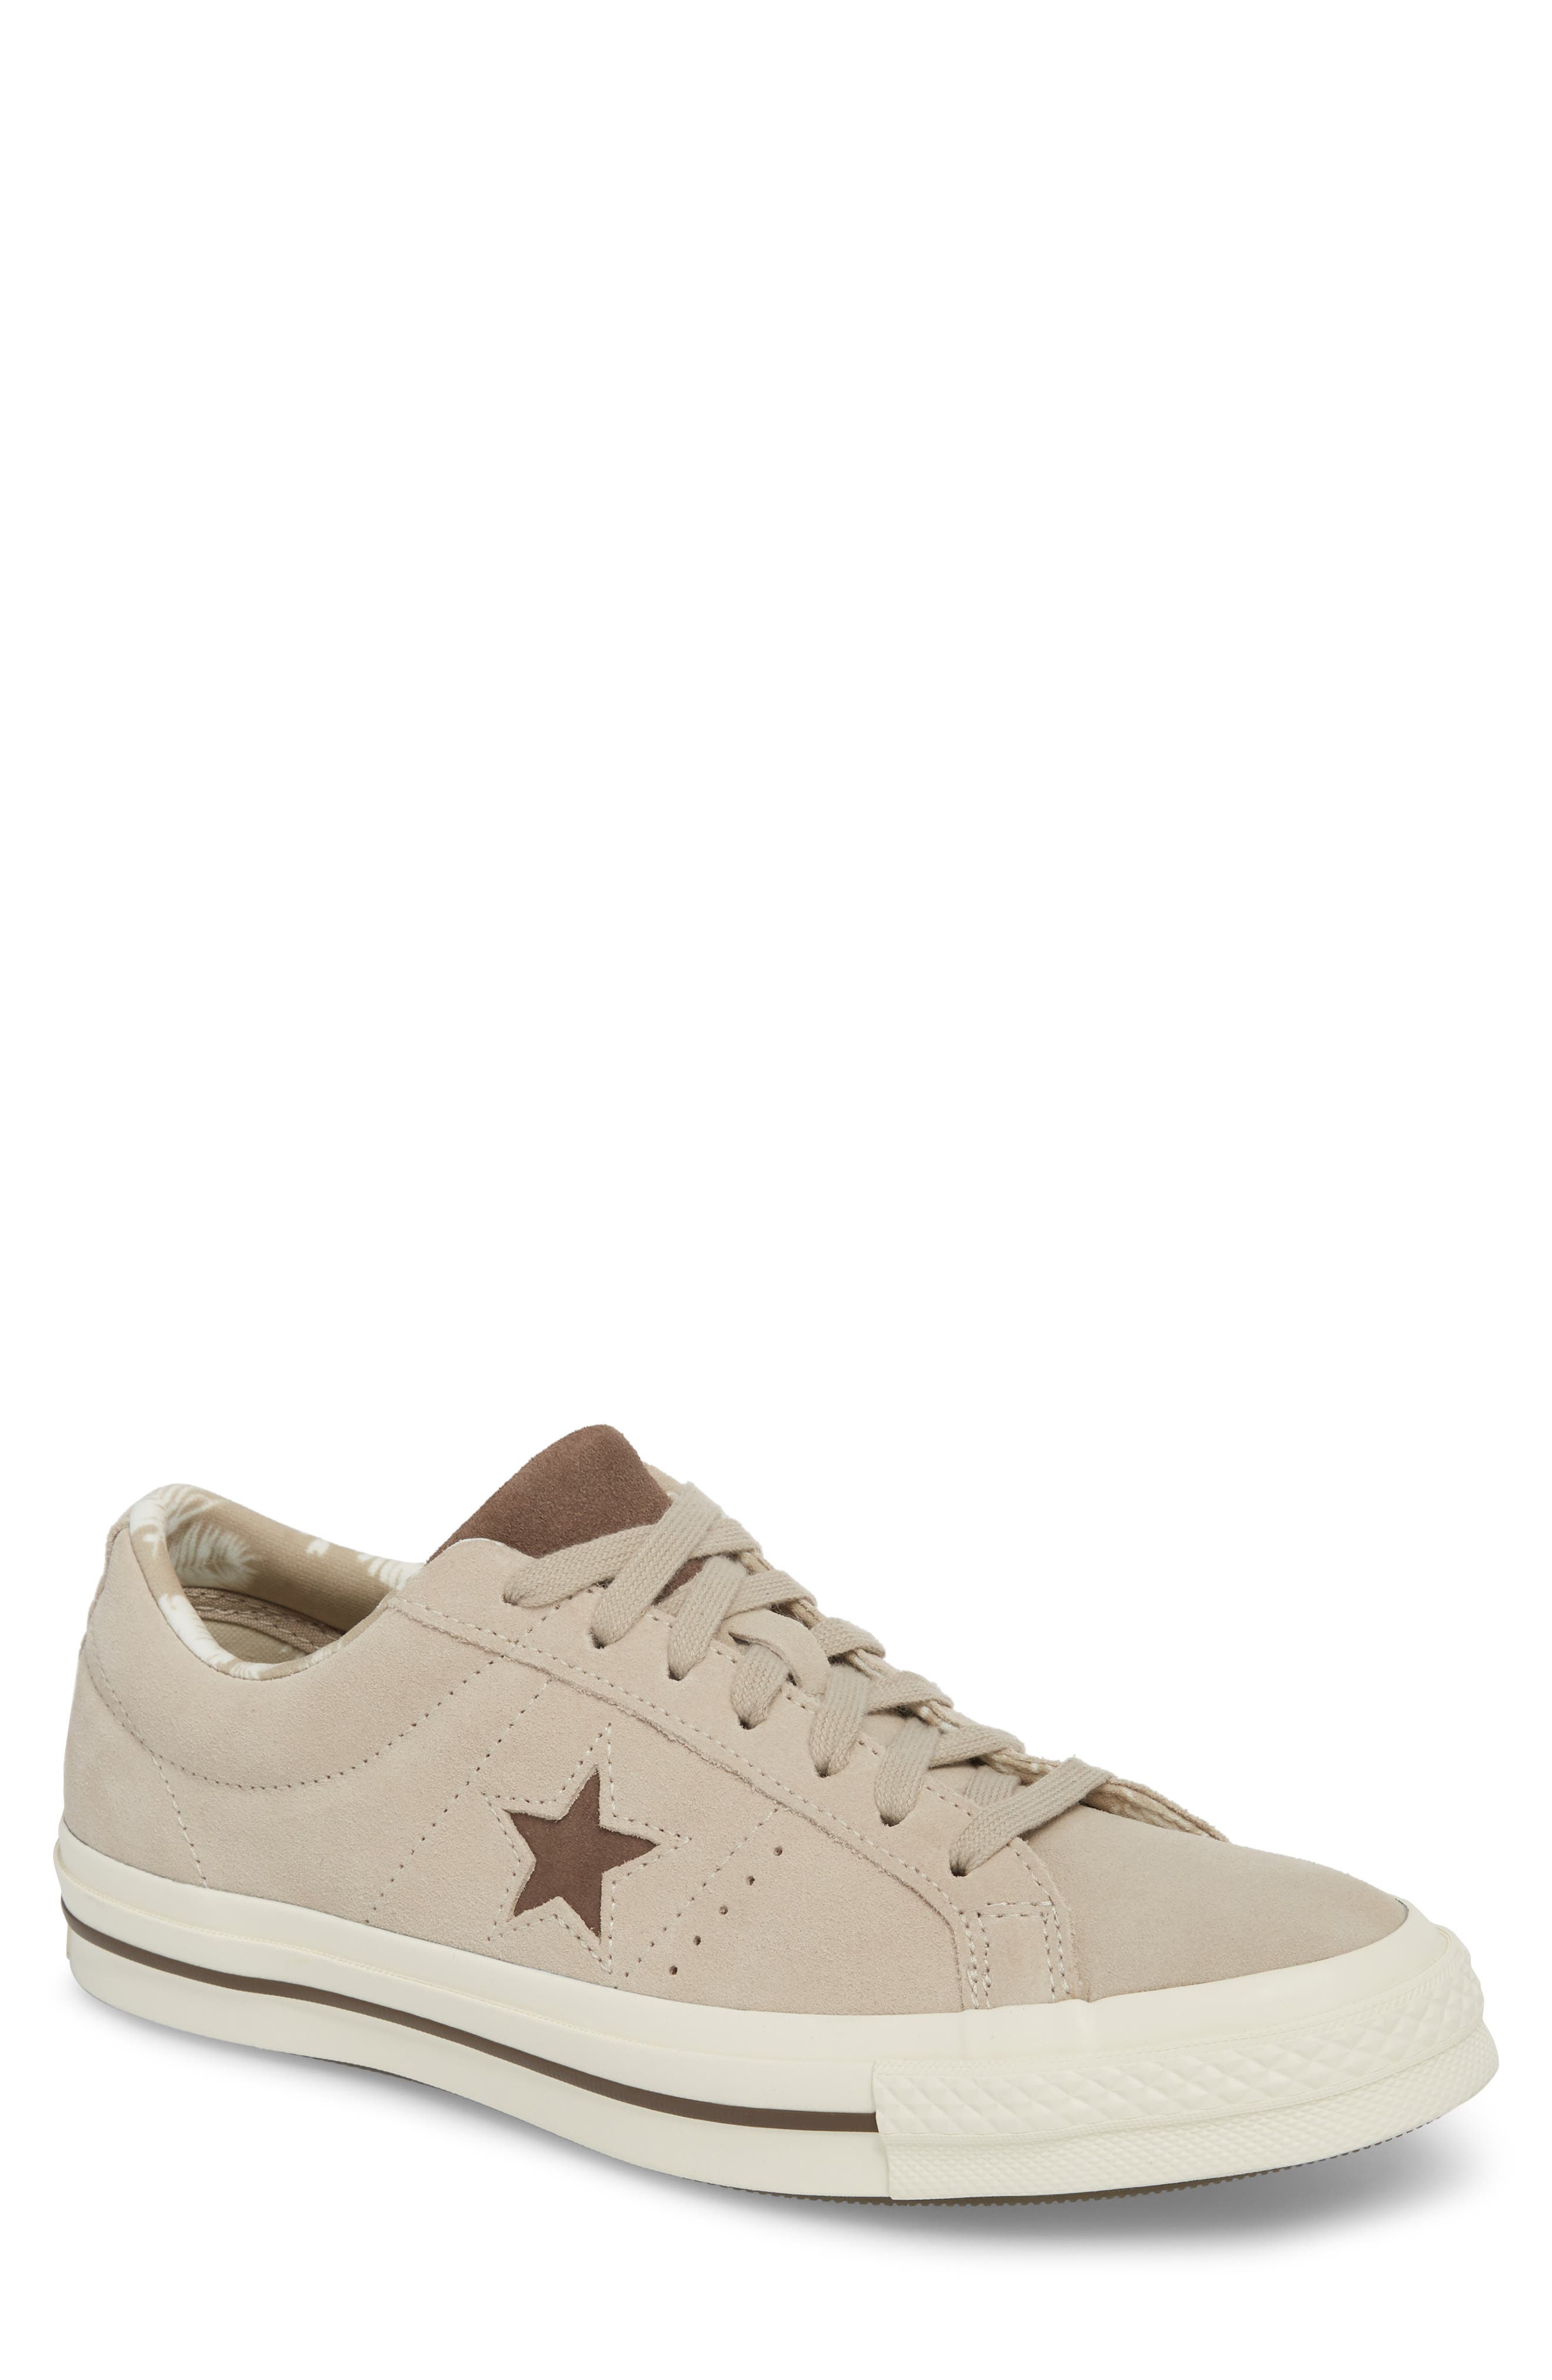 One-Star Tropical Sneaker,                         Main,                         color, Khaki Suede